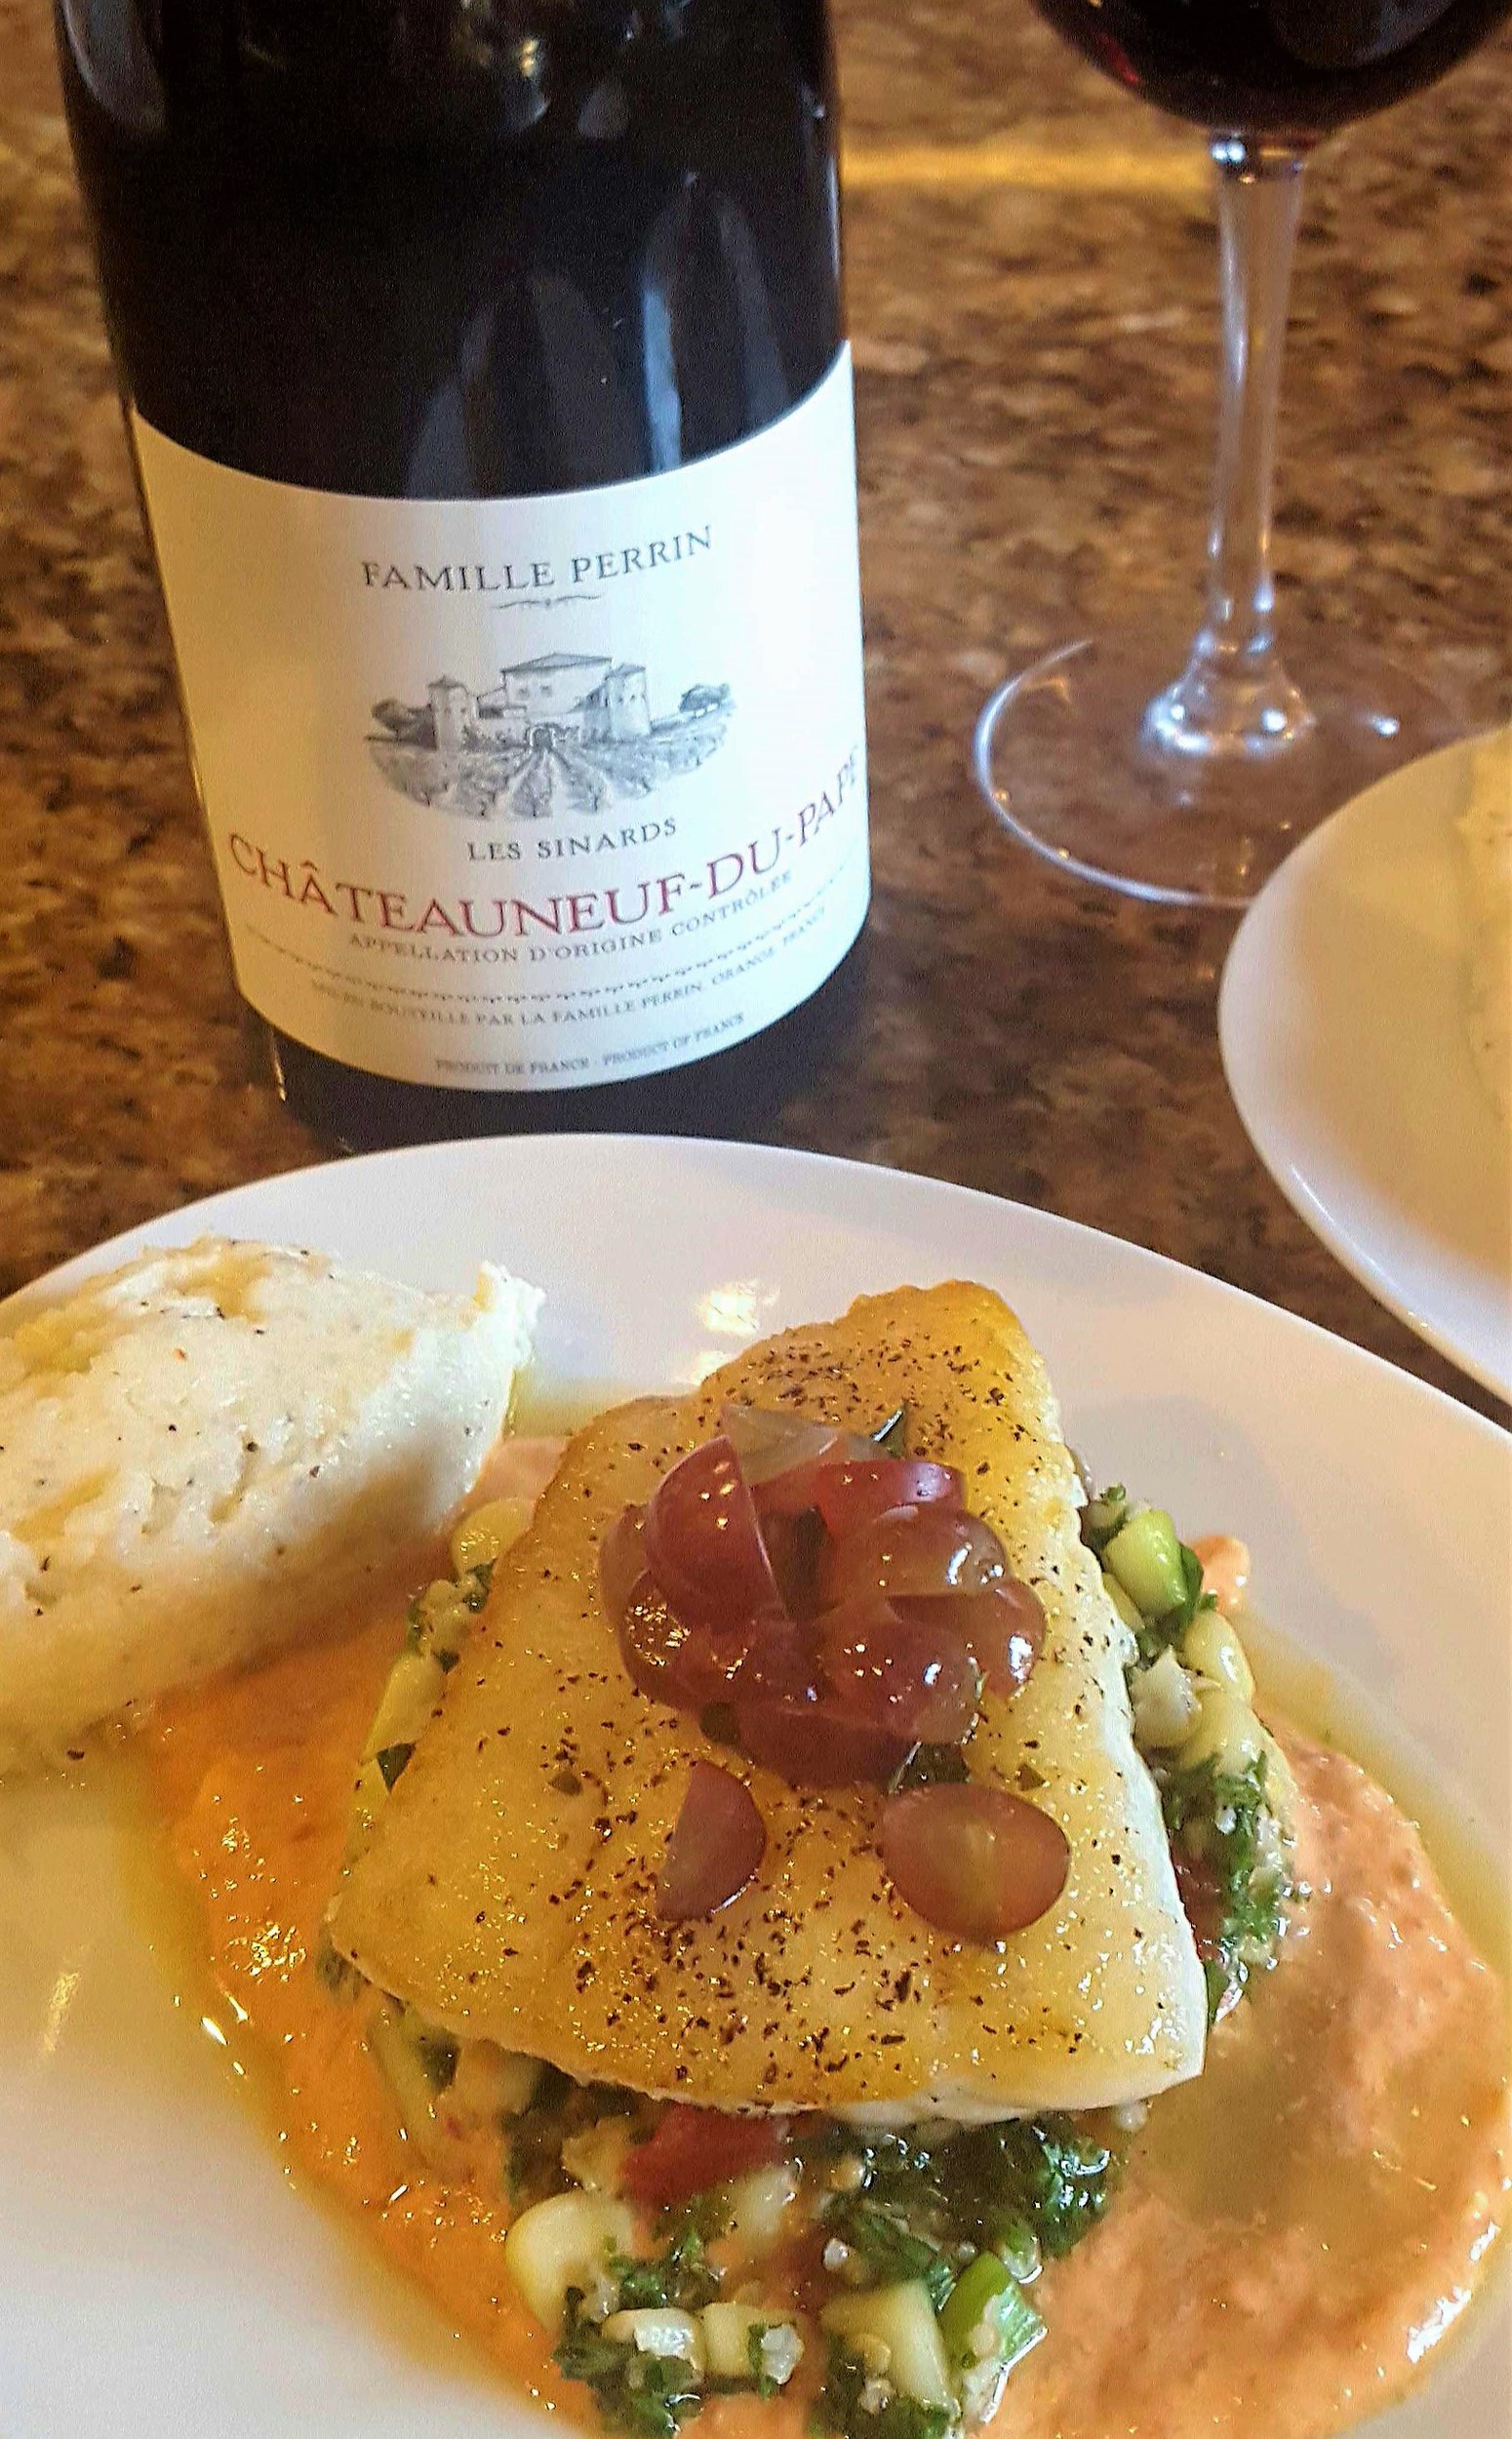 Menu items at 3 Palms Grille will include pan seared local flounder with quinoa taboule, roasted pepper hummus, lemon oil and pickled grapes.